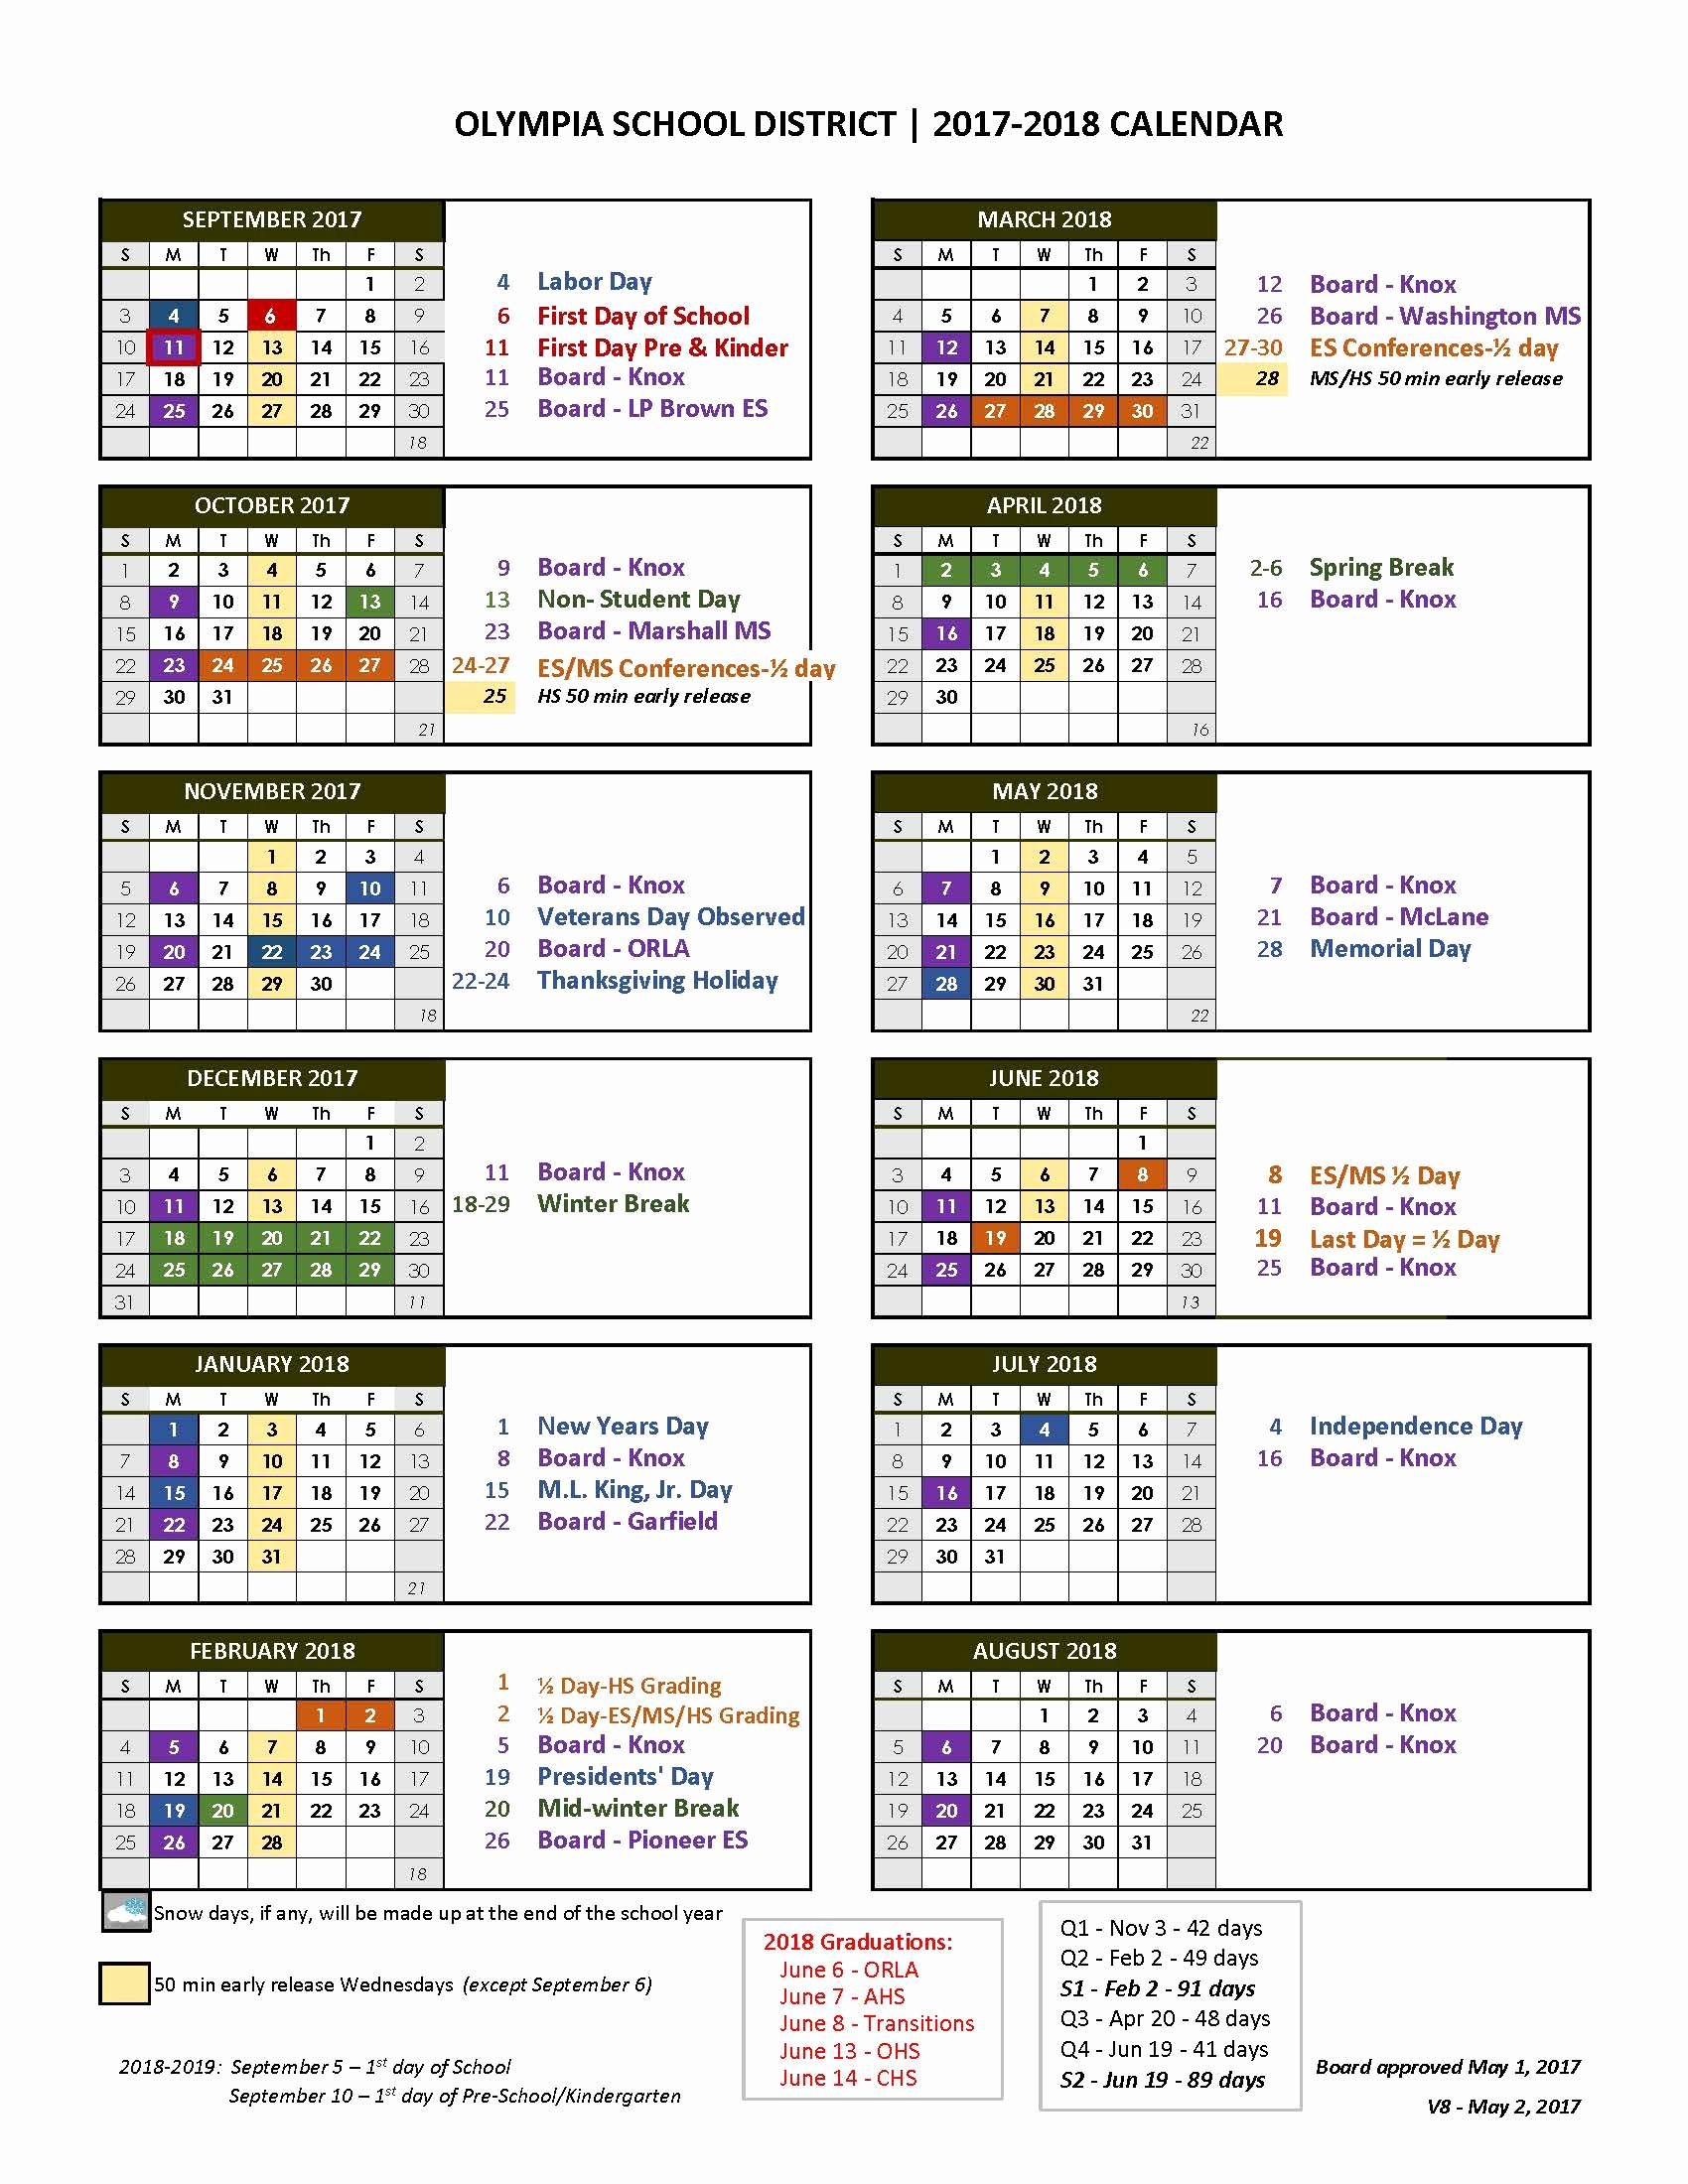 2017-18 Blank Calendar Elegant 2017 18 Calendar and Bell Times Posted On District Website